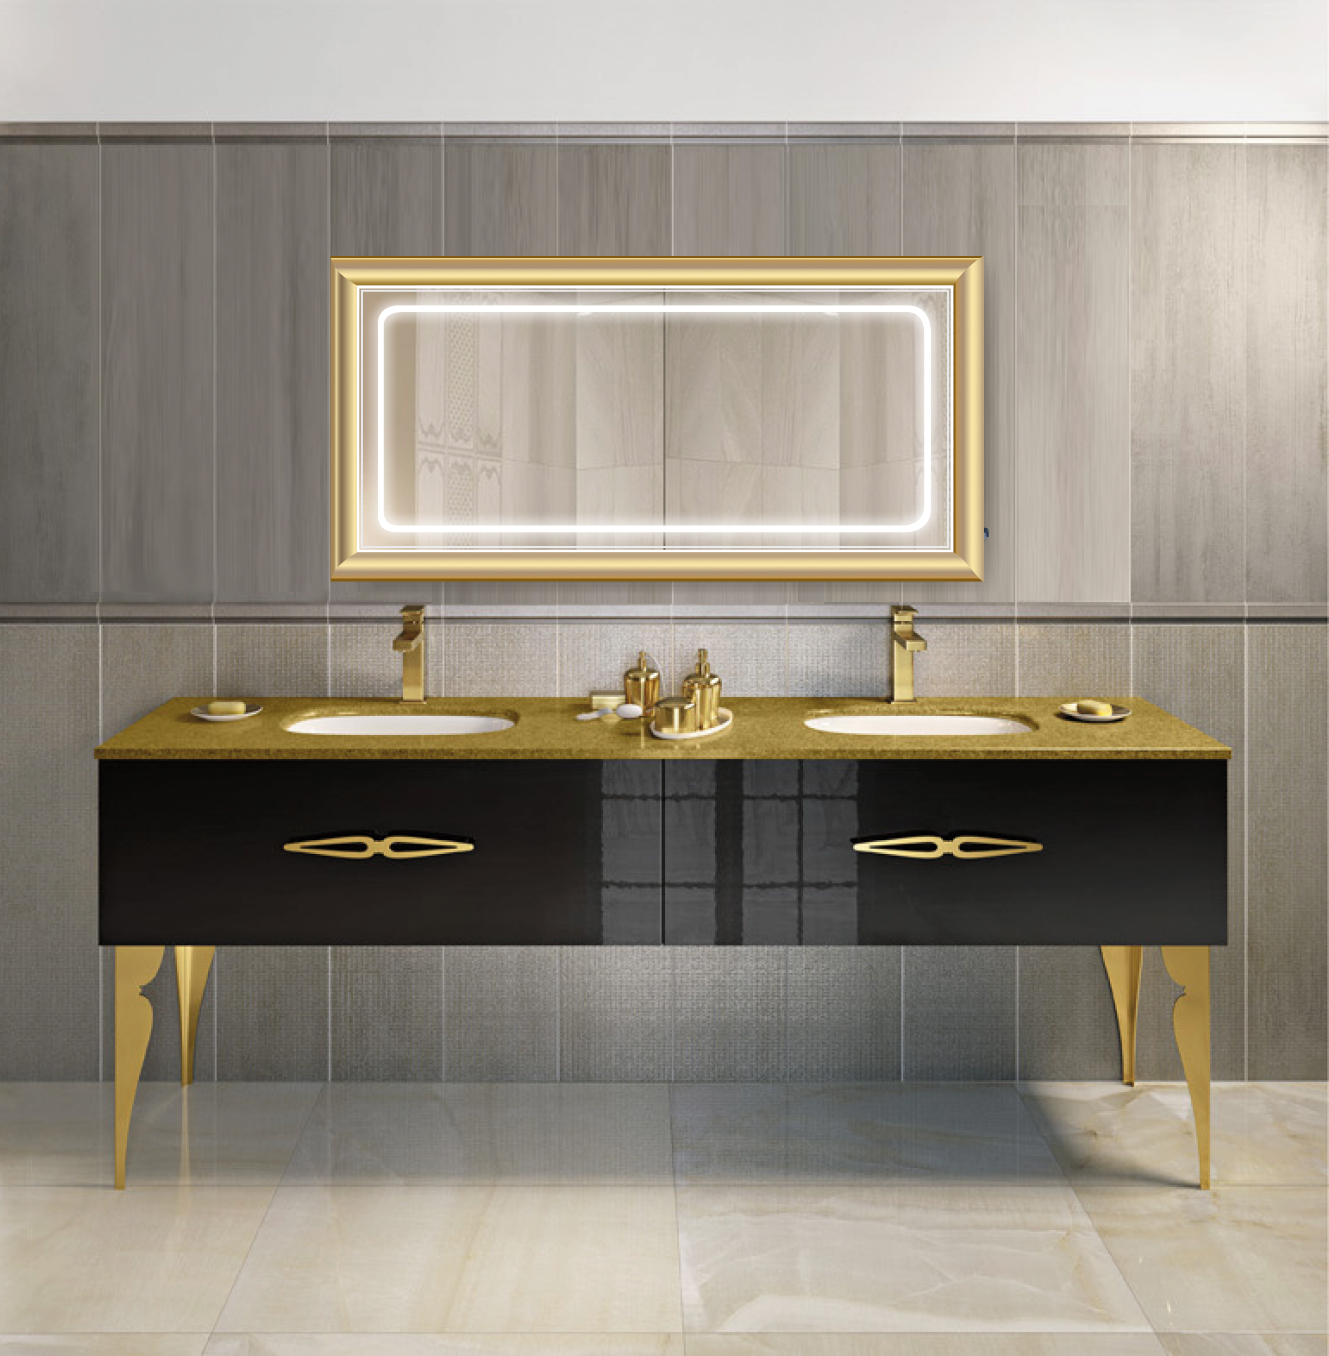 LED Lighted 60 Inch x 30 Inch Bathroom Gold Frame Mirror